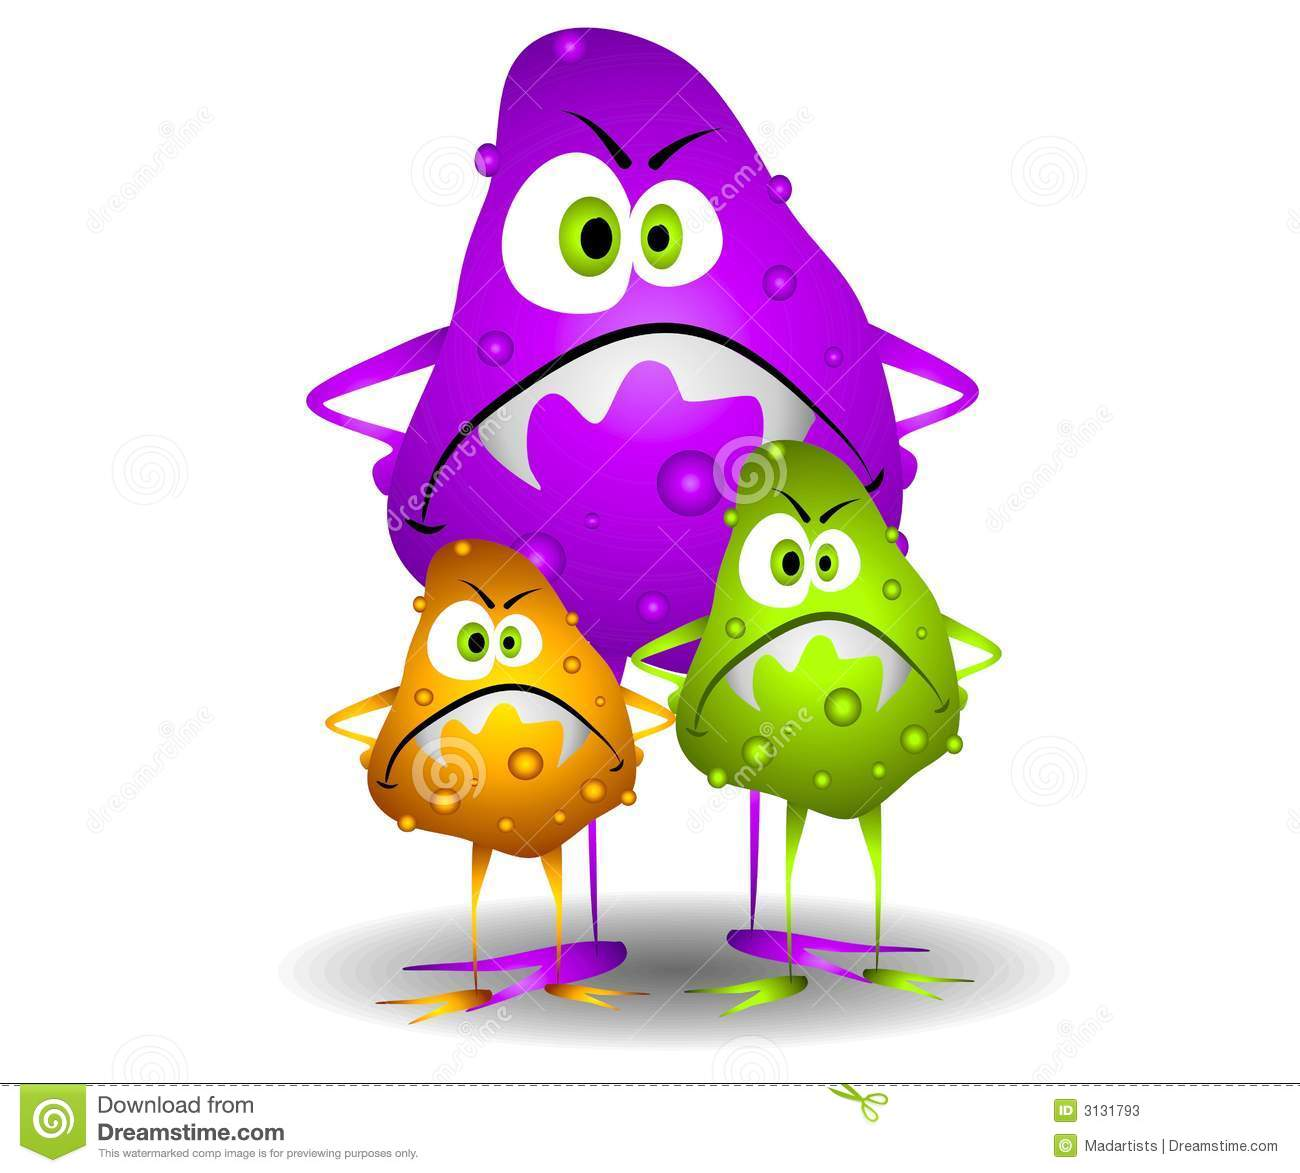 Germs Clipart.